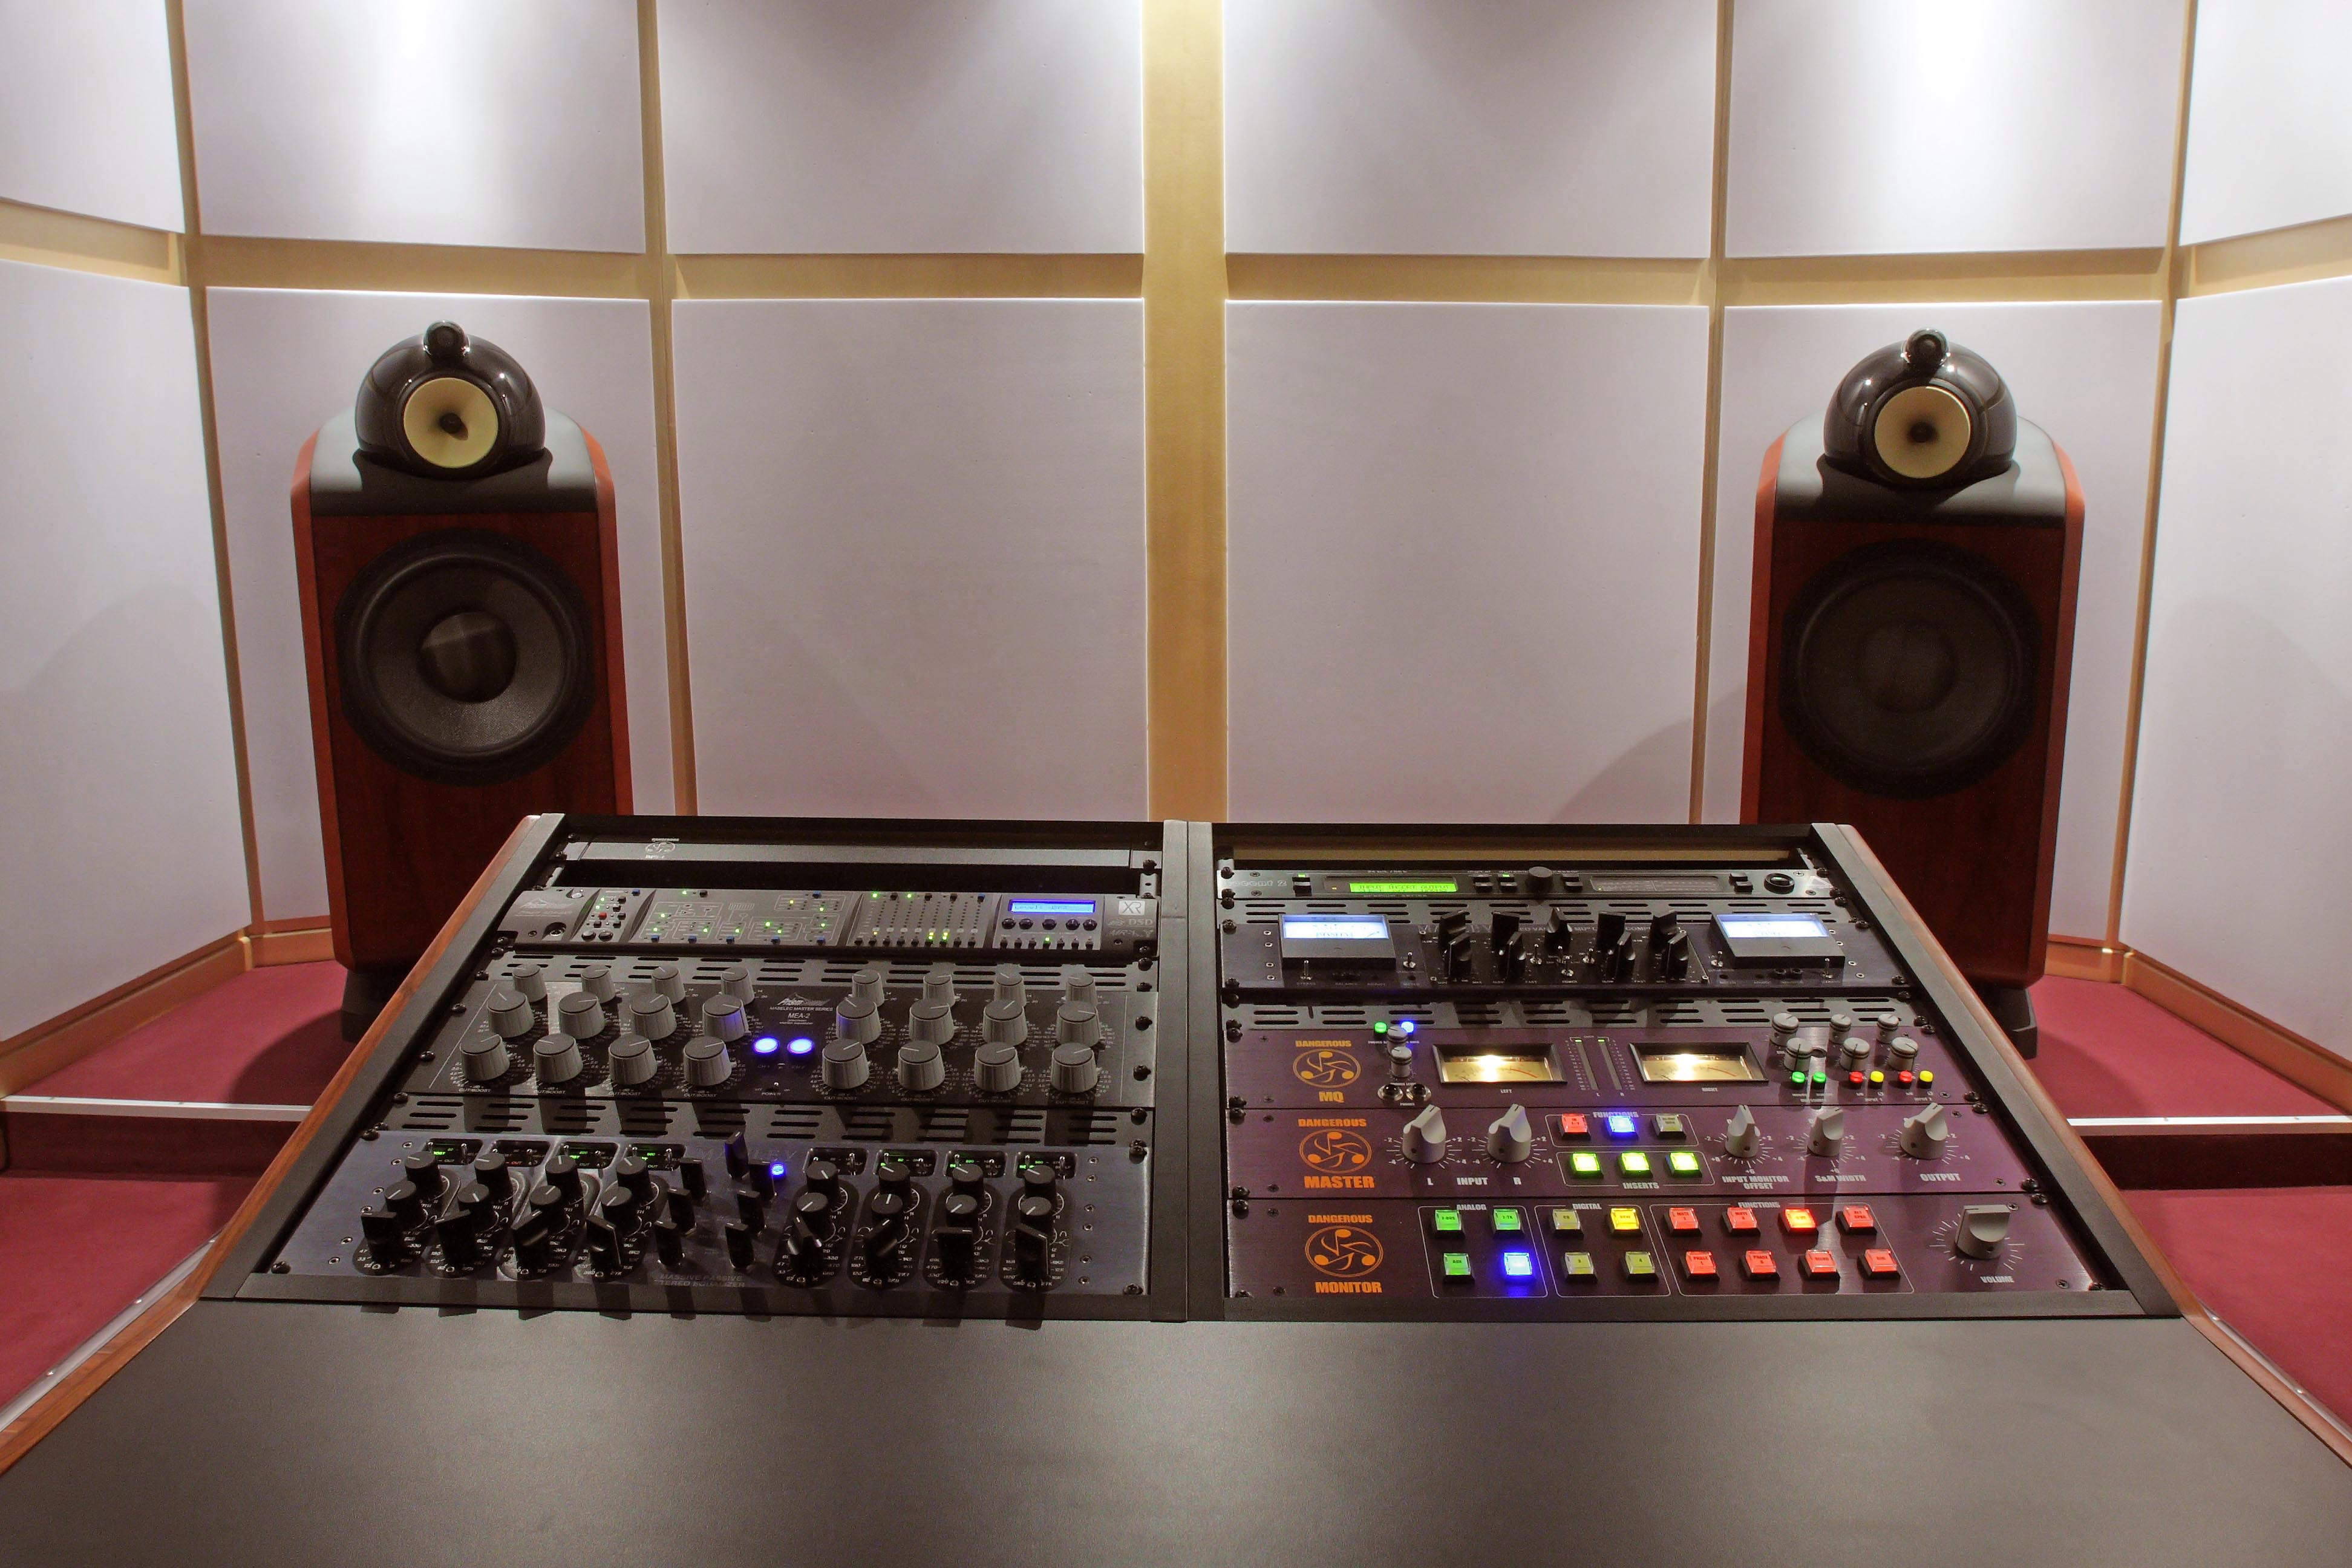 Mastering Studio - Is Your Mix Ready for Mastering? - mixrevu.com